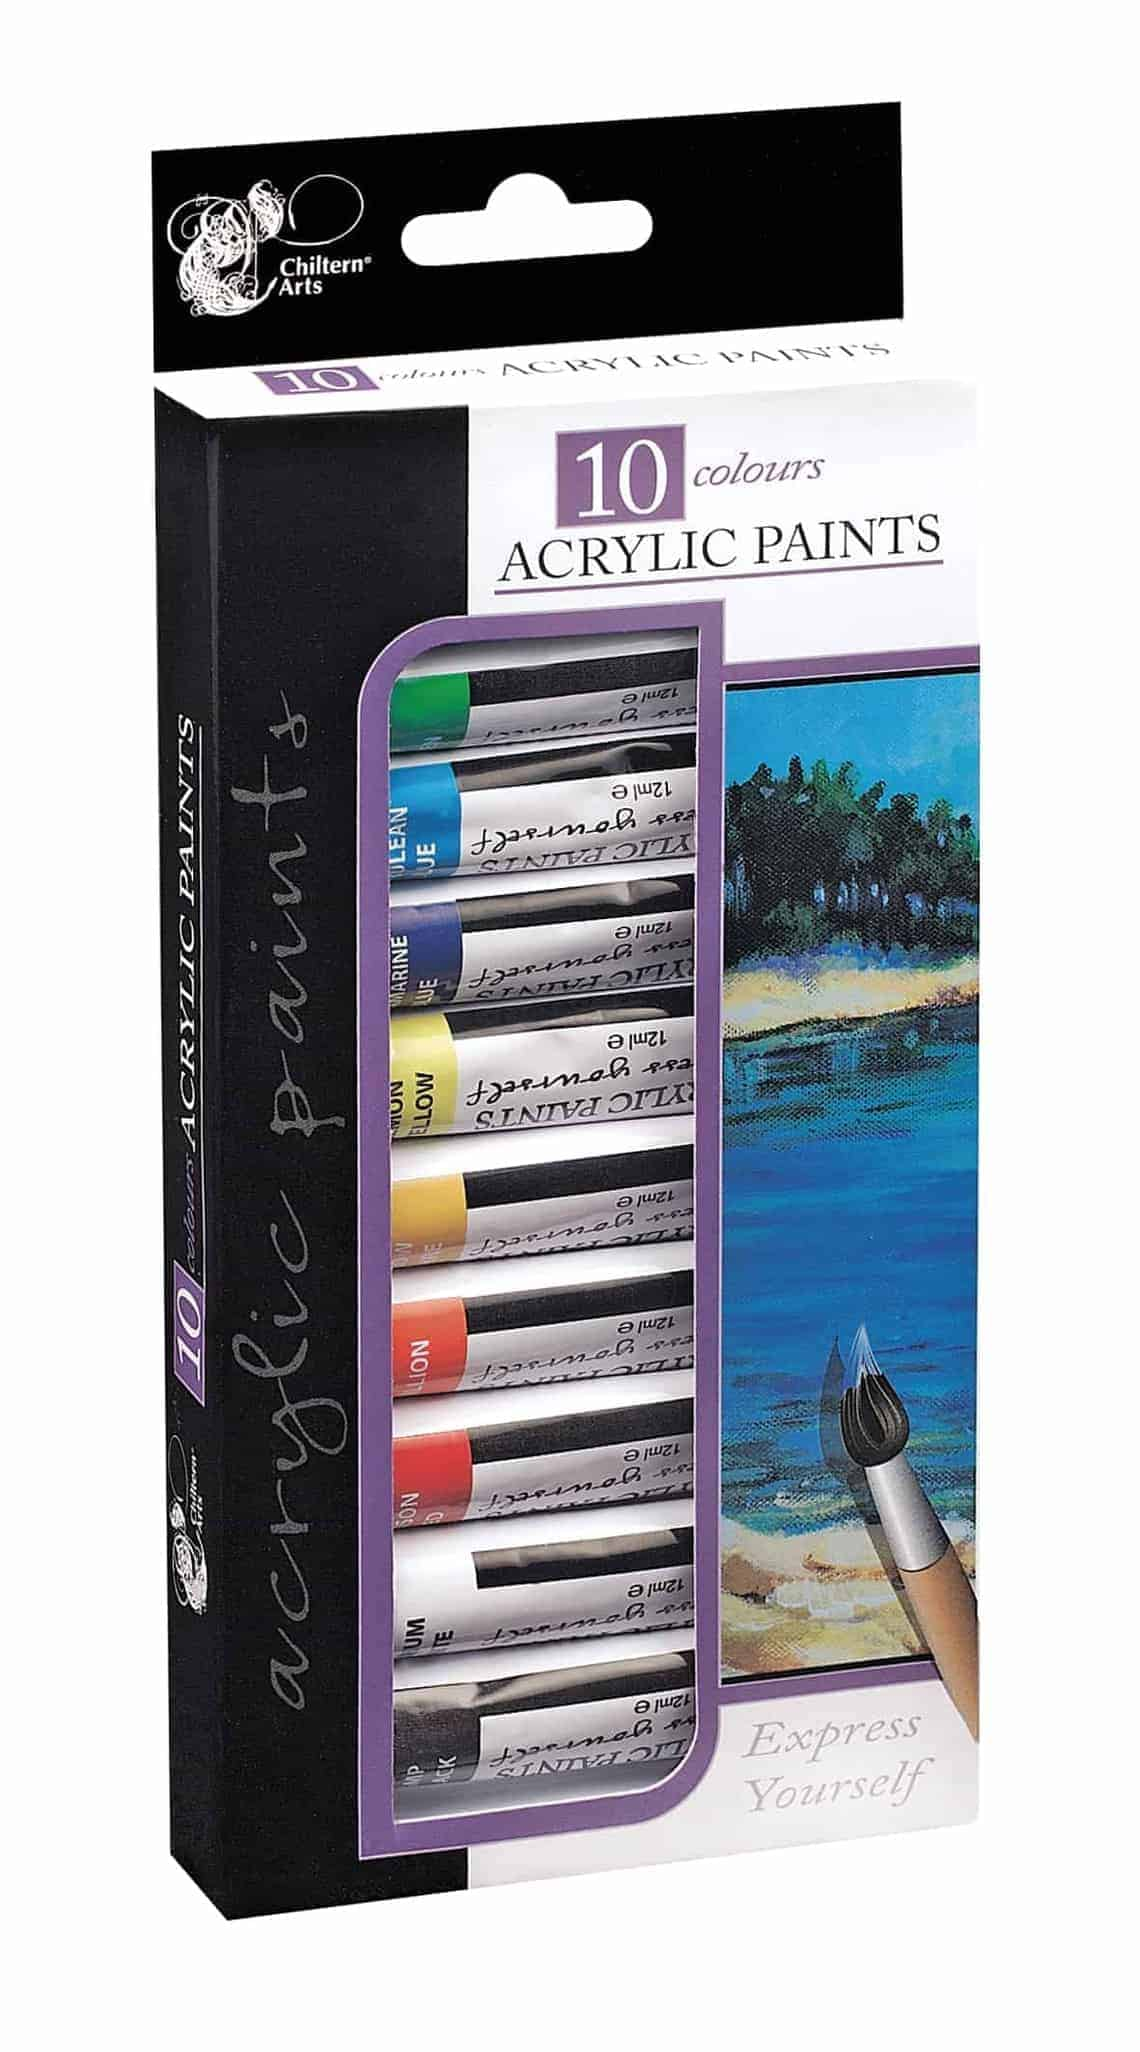 Chiltern Arts Acrylic Paints 10Pk